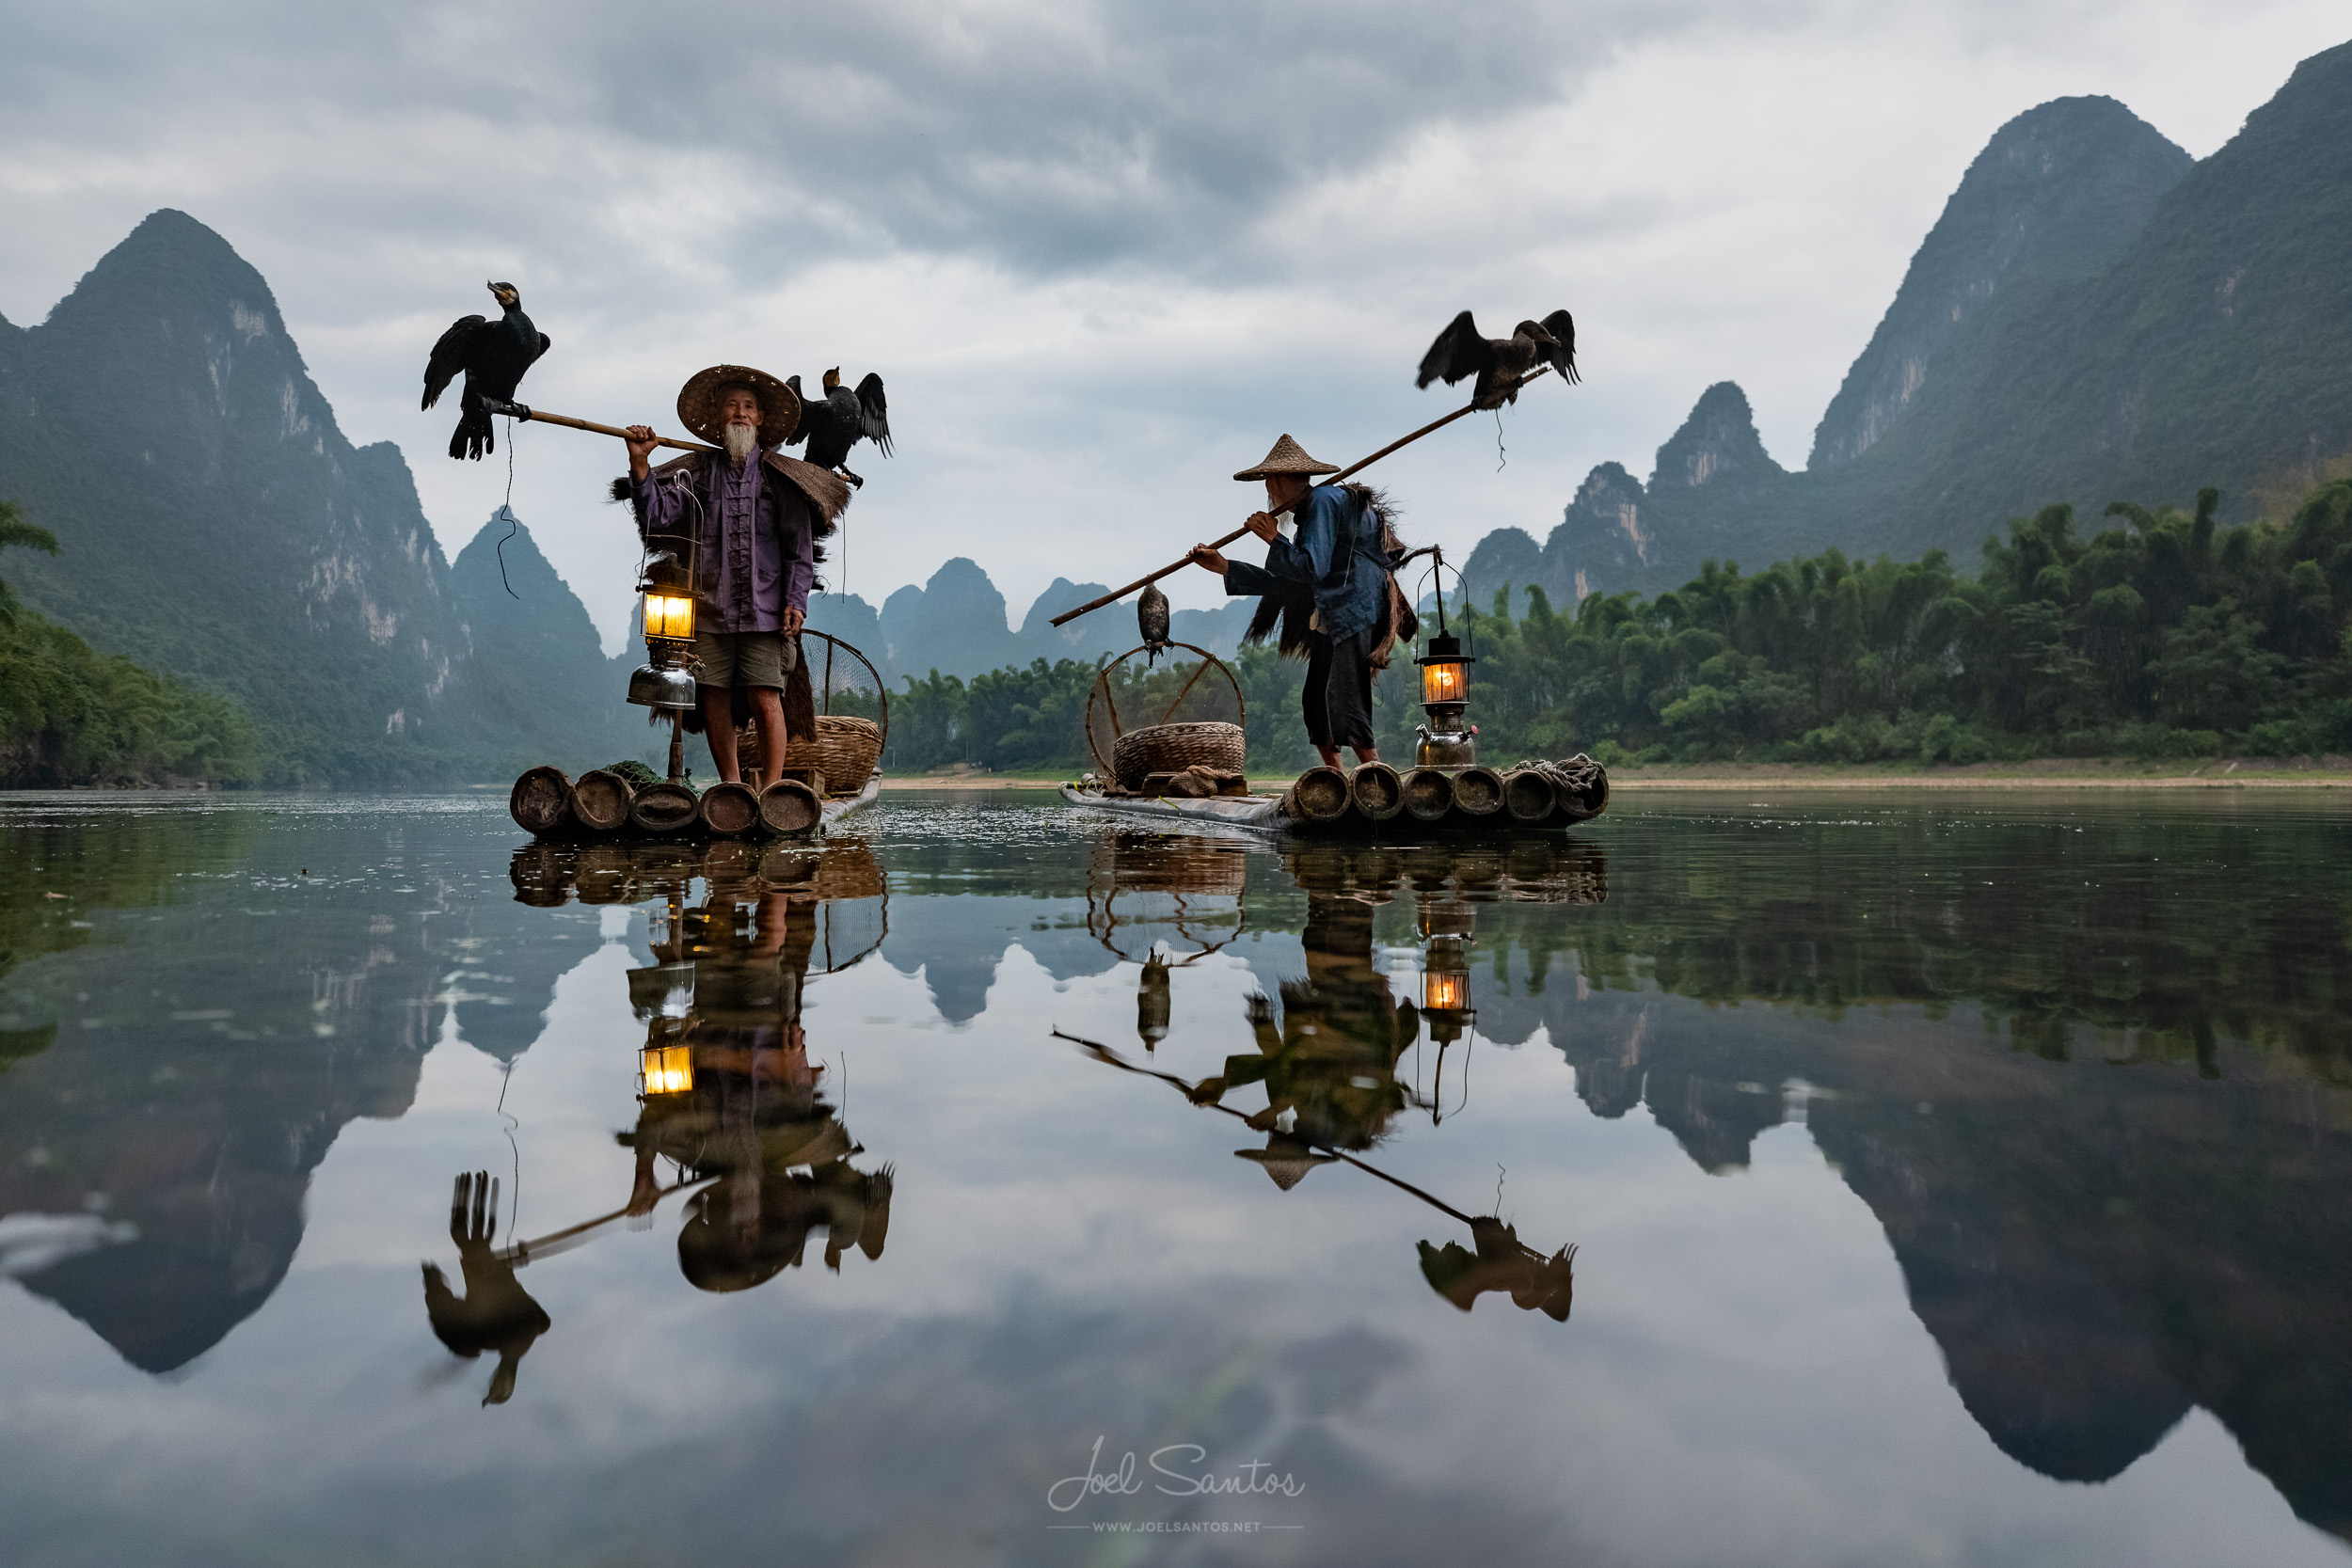 Cormorant Fishermen - A tradition that faded away in less than a decade…